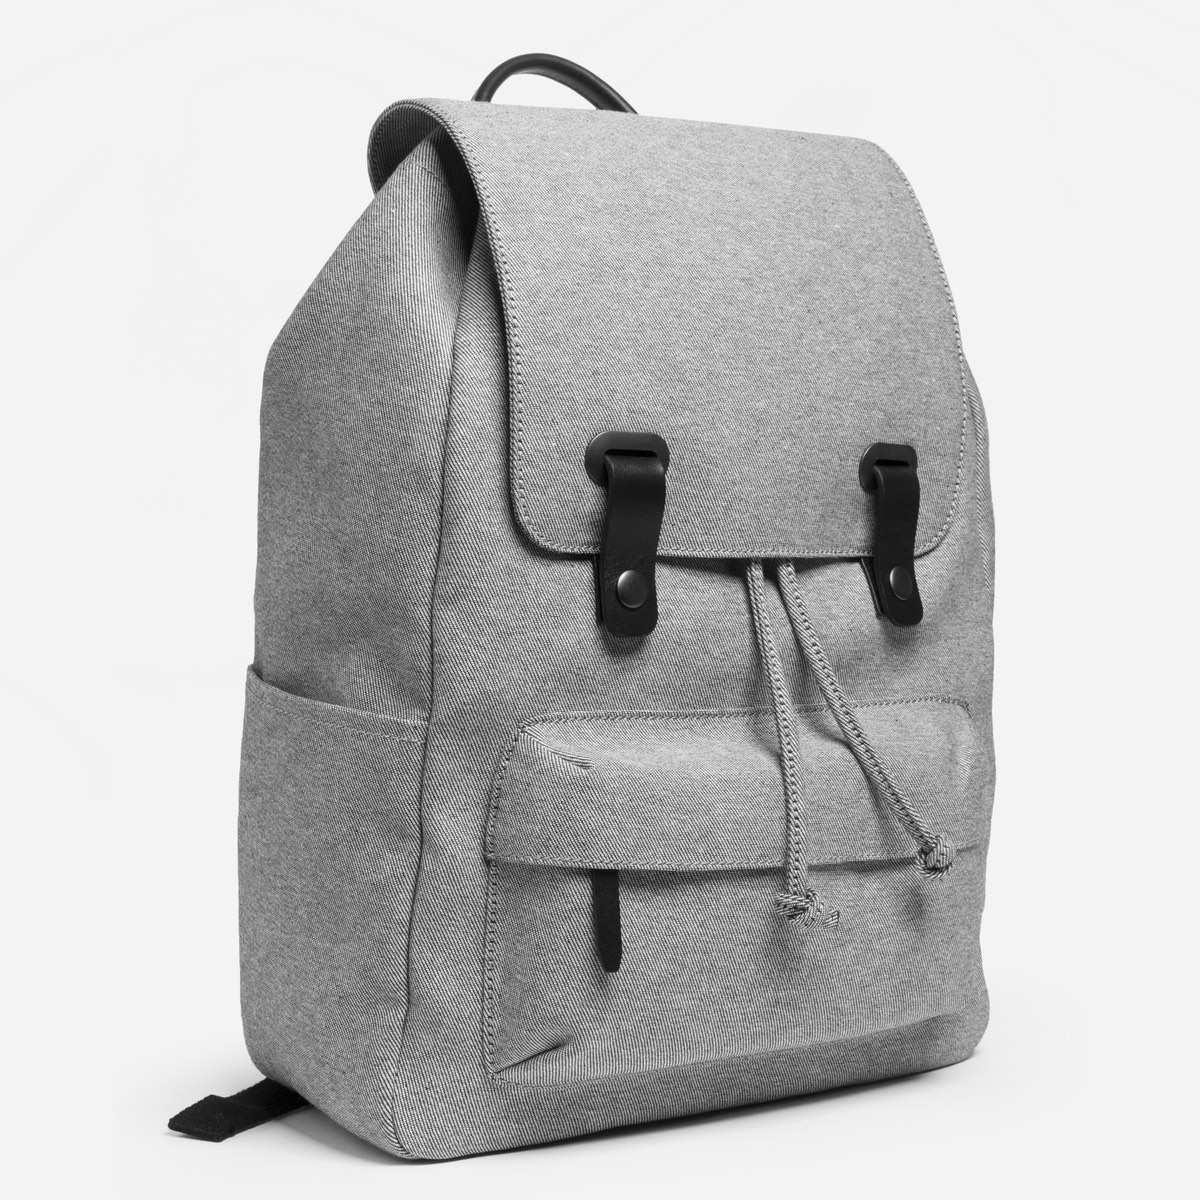 """<a href=""""https://www.everlane.com/products/womens-twill-backpack-reverse-denim-black-leather?collection=womens-backpacks-bags""""><h2>Everlane Twill Snap Backpack, $65</a></h2>"""